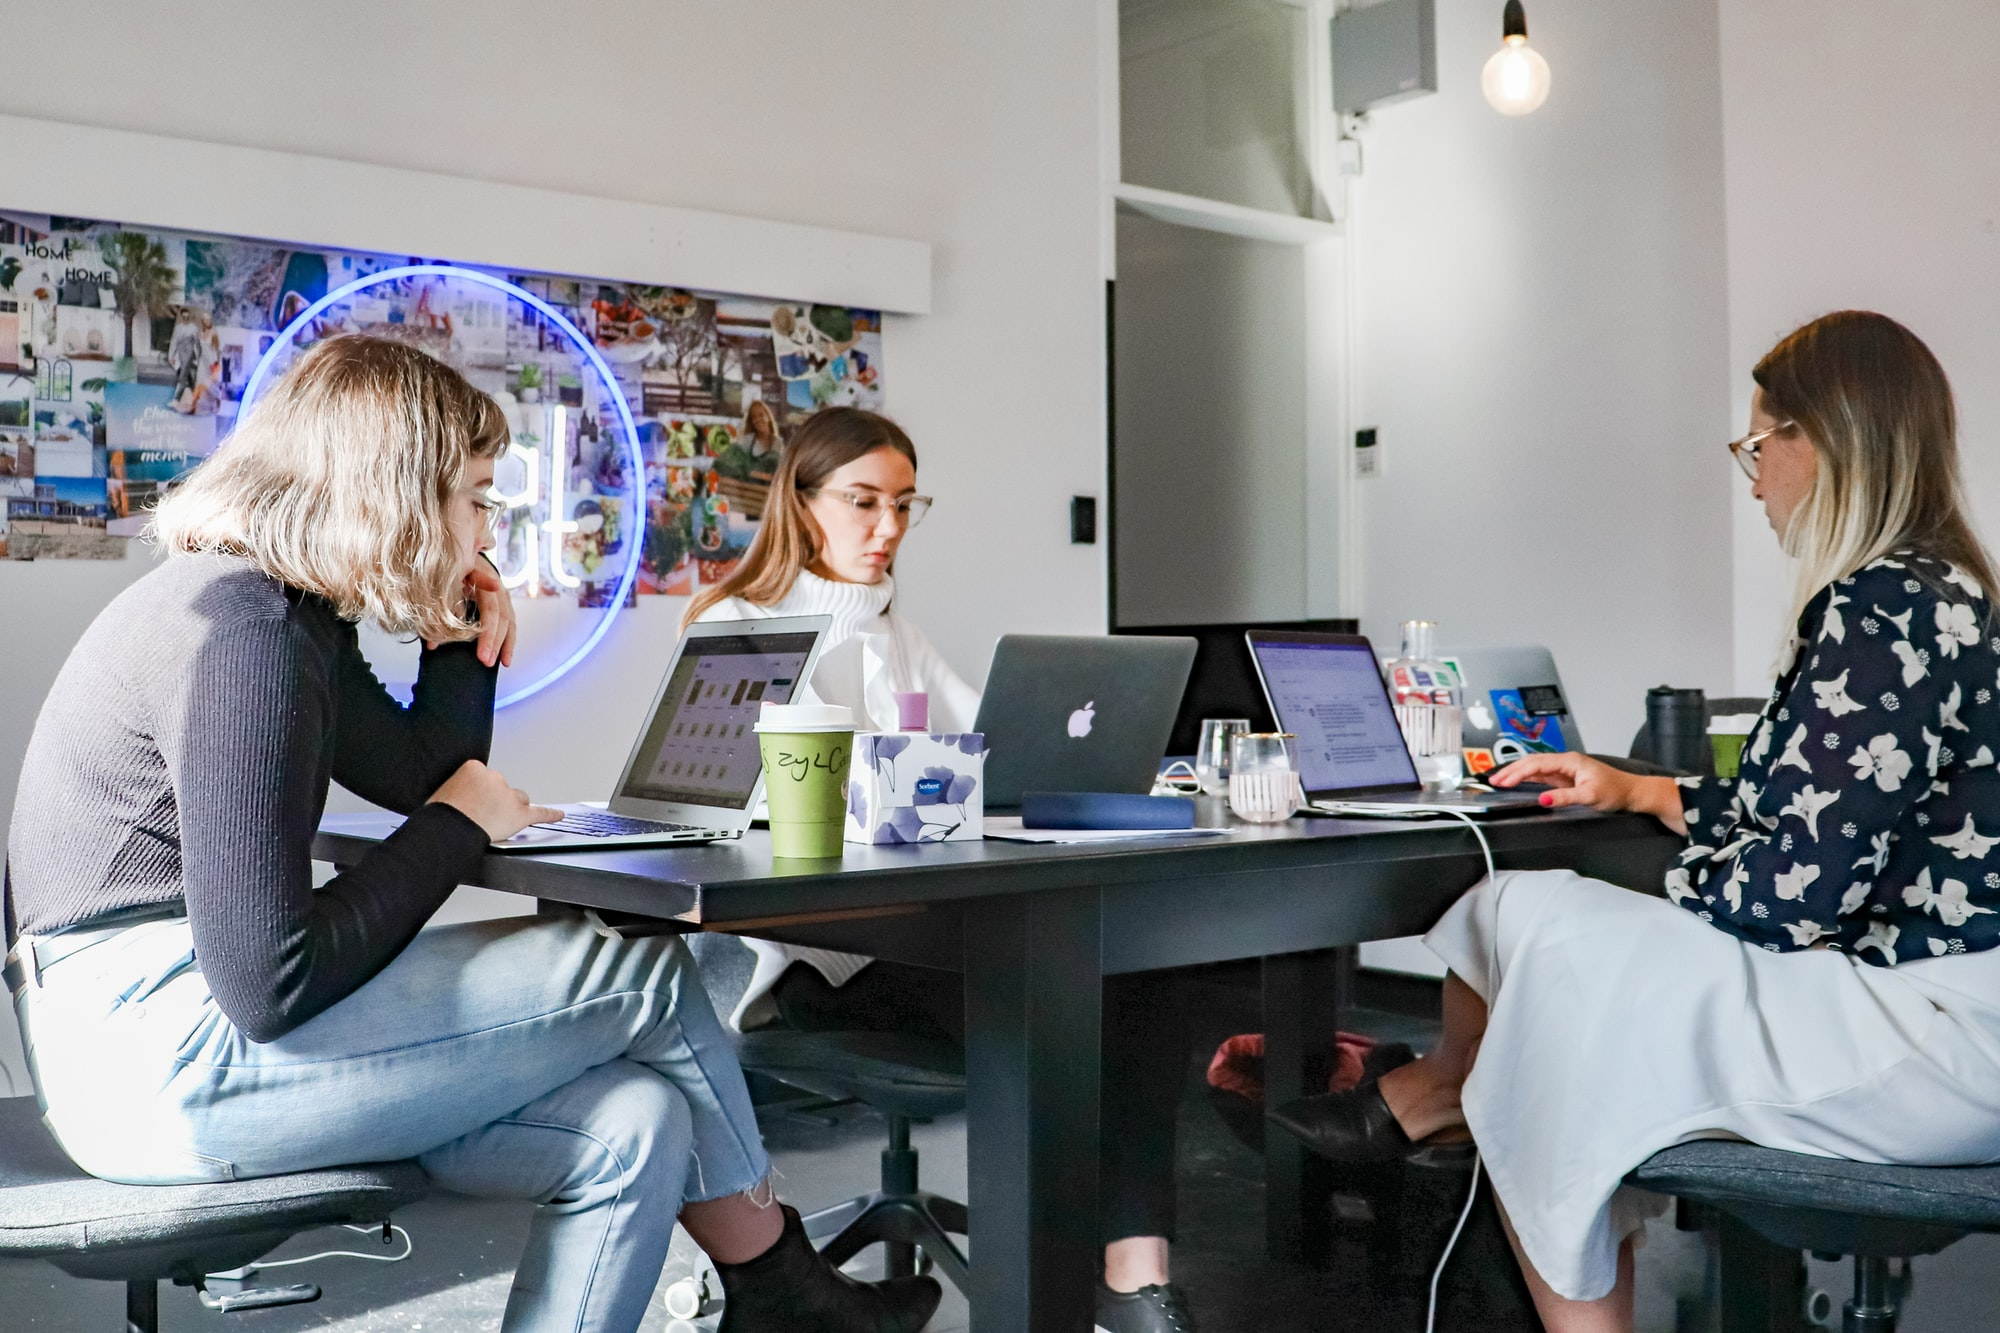 Three Gen Z females sitting at a shared desk, working on their laptops.